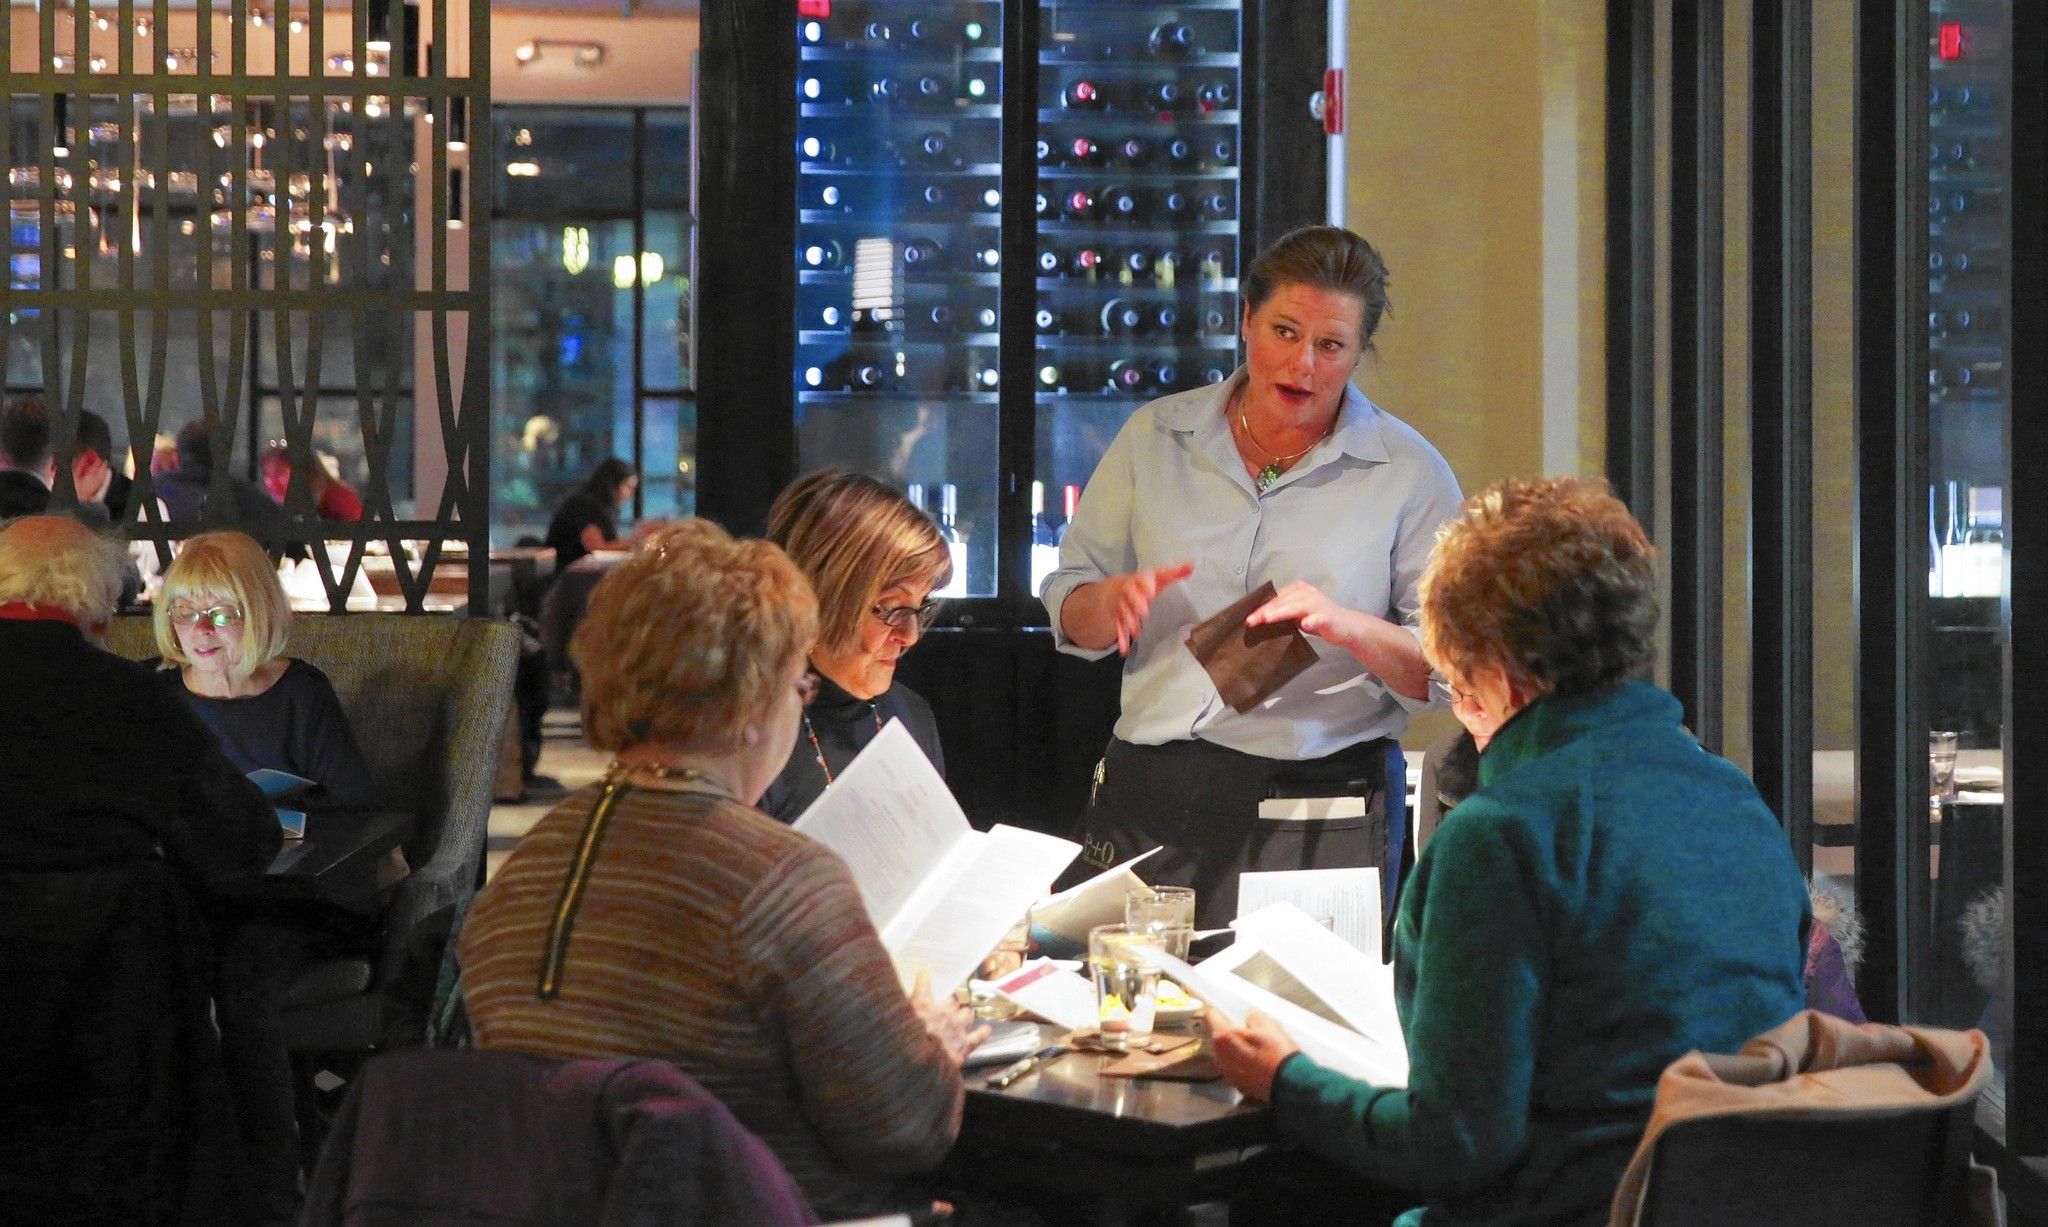 Chicago reservation apps offer access to exclusive restaurants